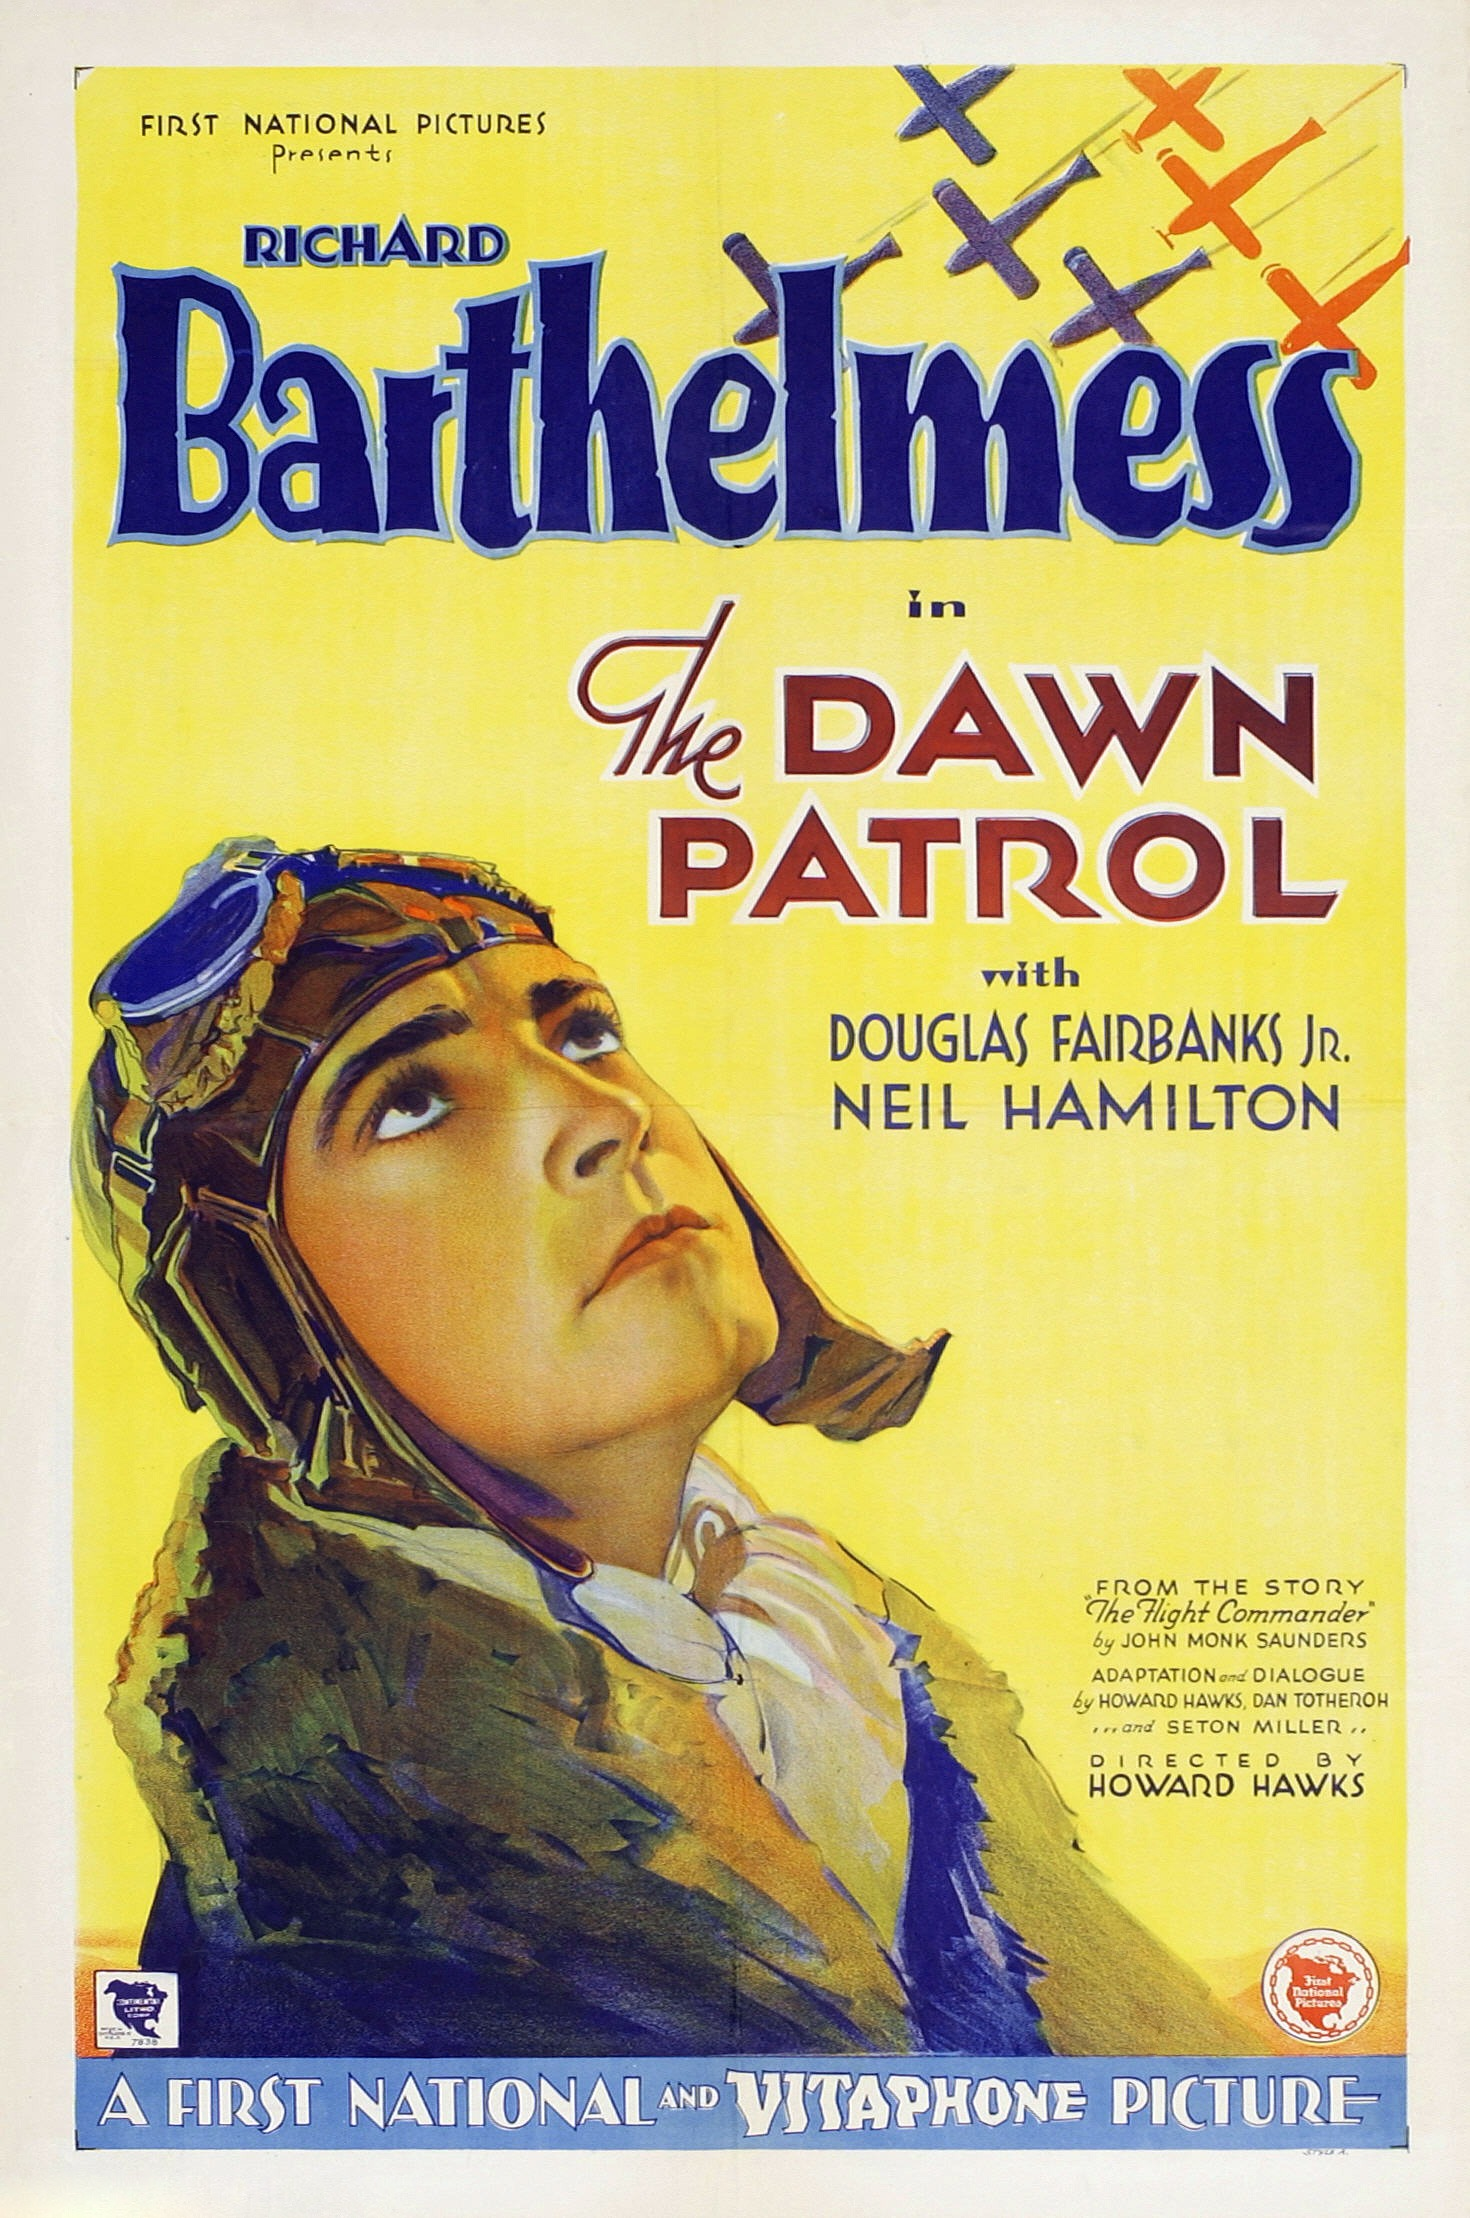 https://static.tvtropes.org/pmwiki/pub/images/poster_dawn_patrol_the_1930_01.jpg